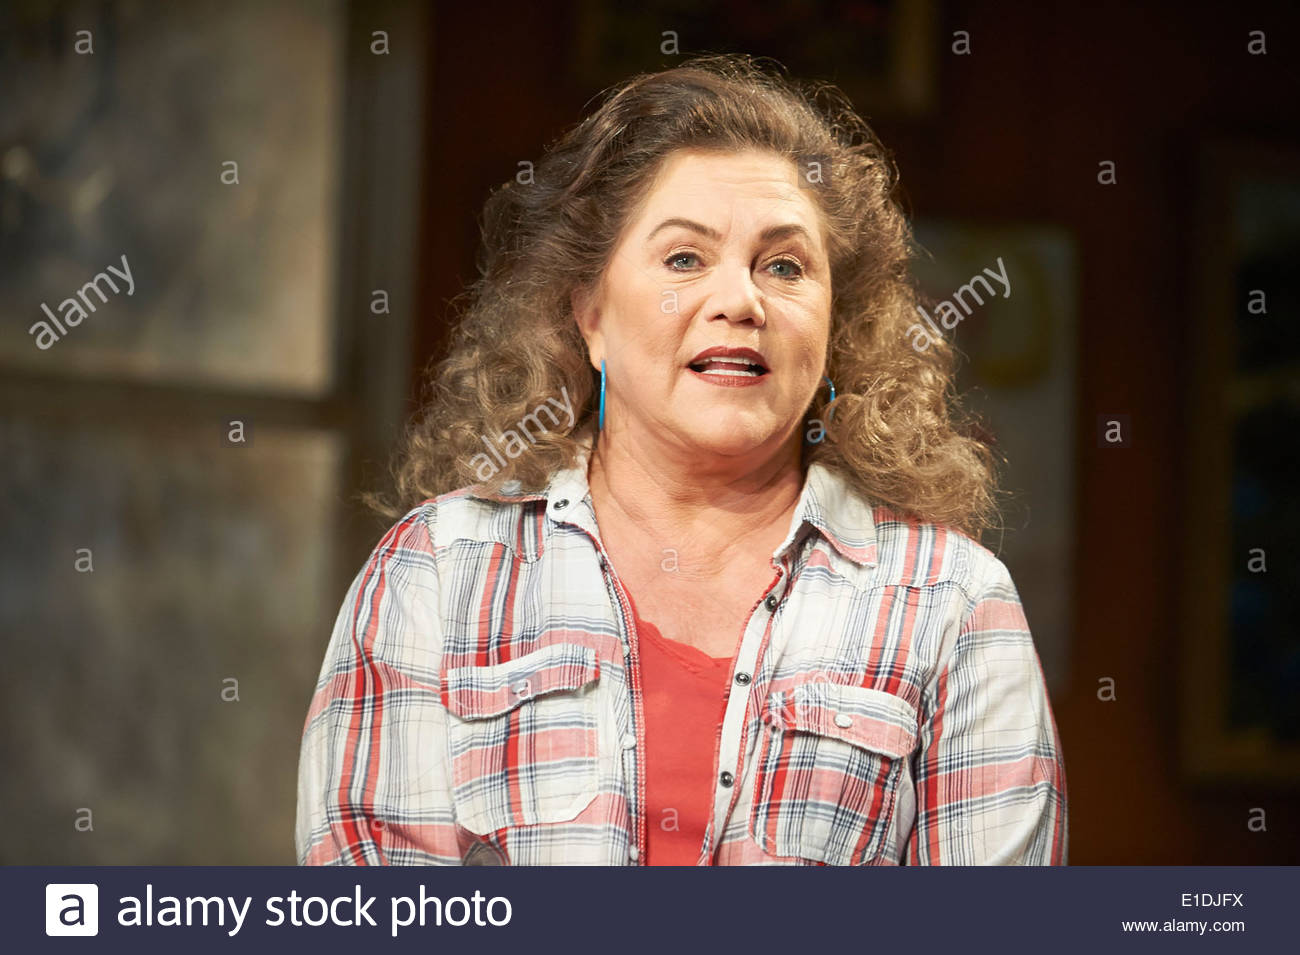 Bakersfield Mist by Stephen Sachs, directed by Polly Teale. With Kathleen Turner as Maude Gutman, - Stock Image